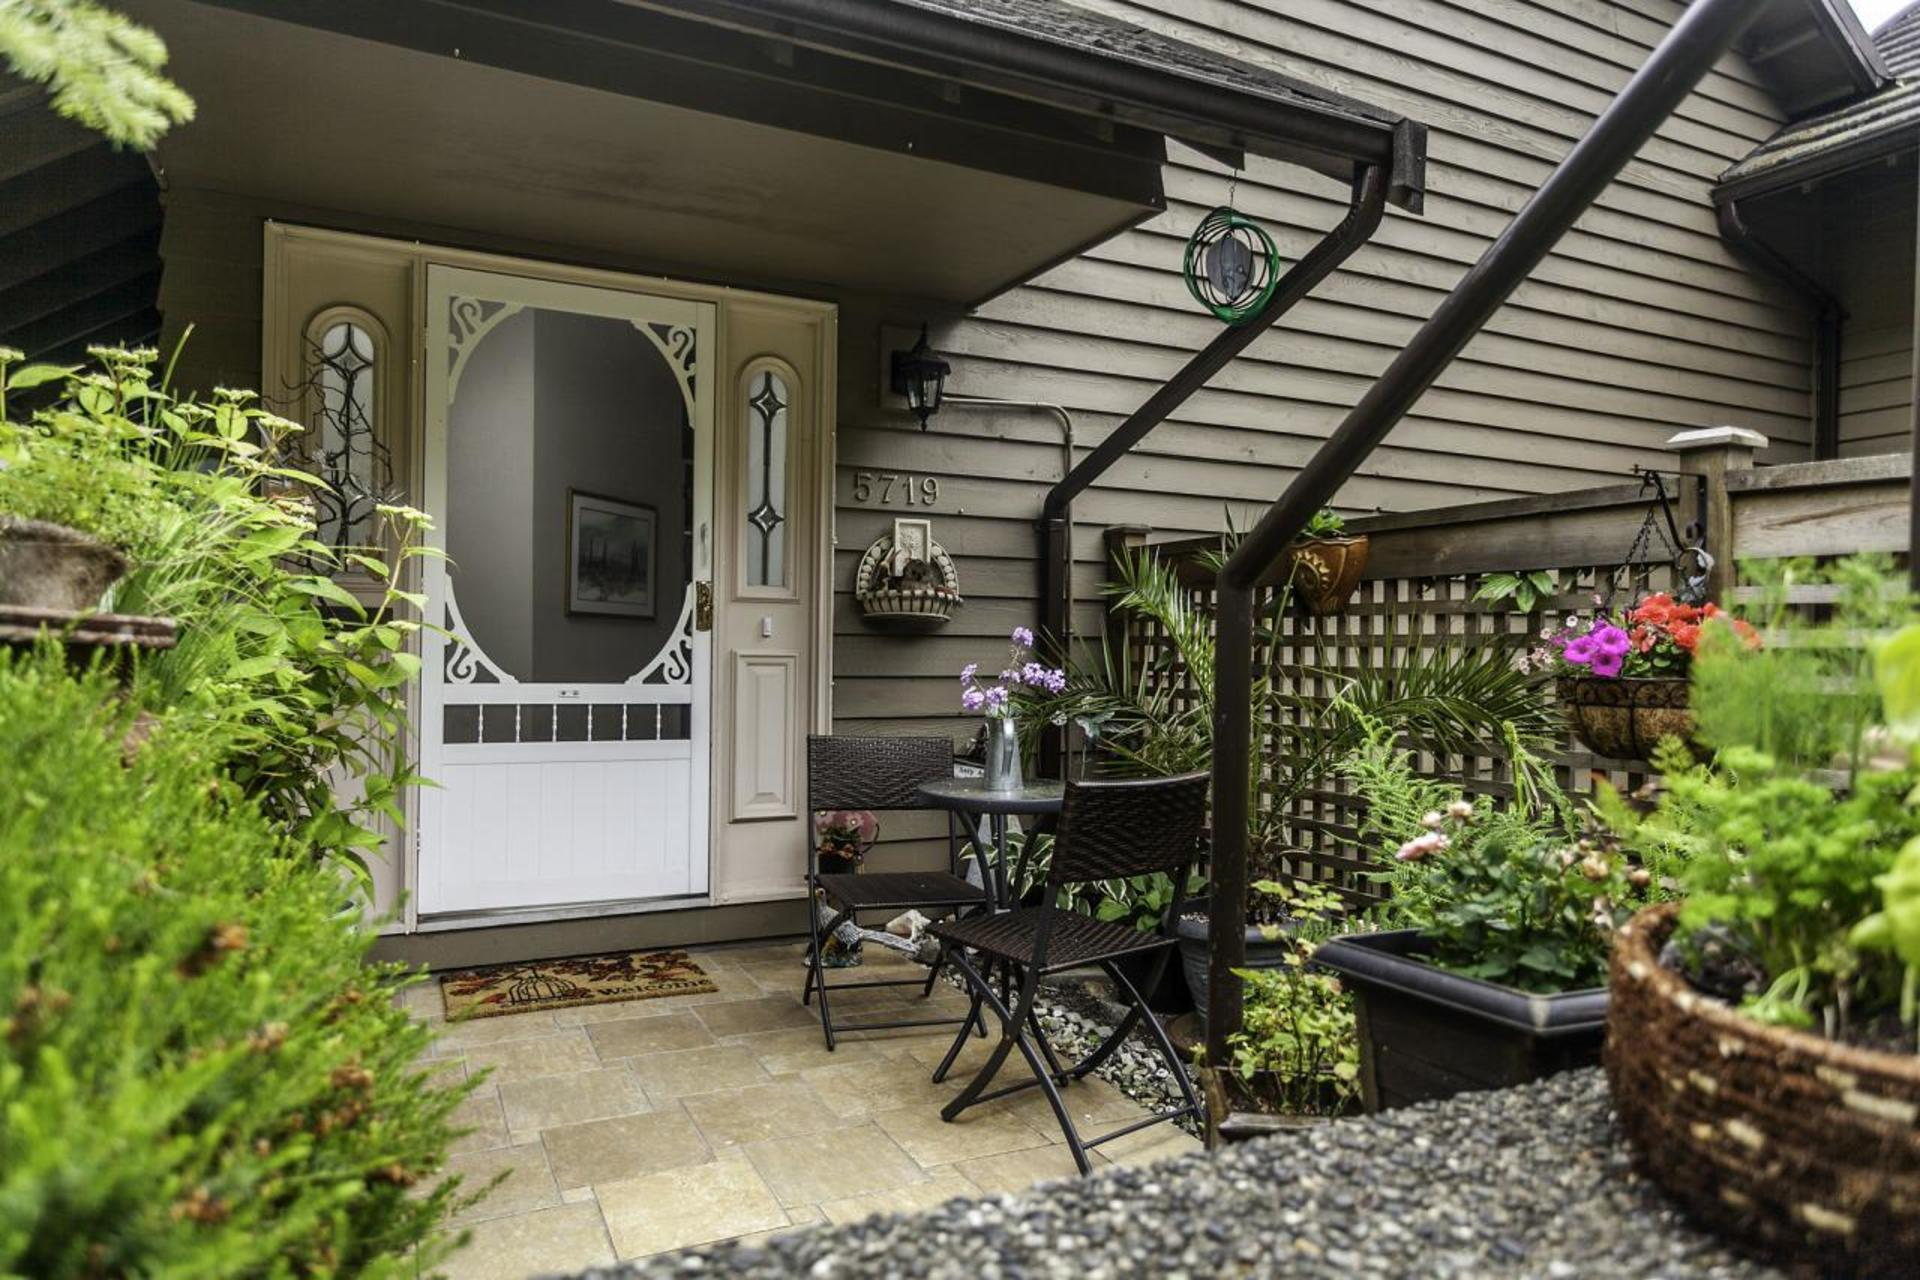 01 at 5719 Owl Court, Grouse Woods, North Vancouver